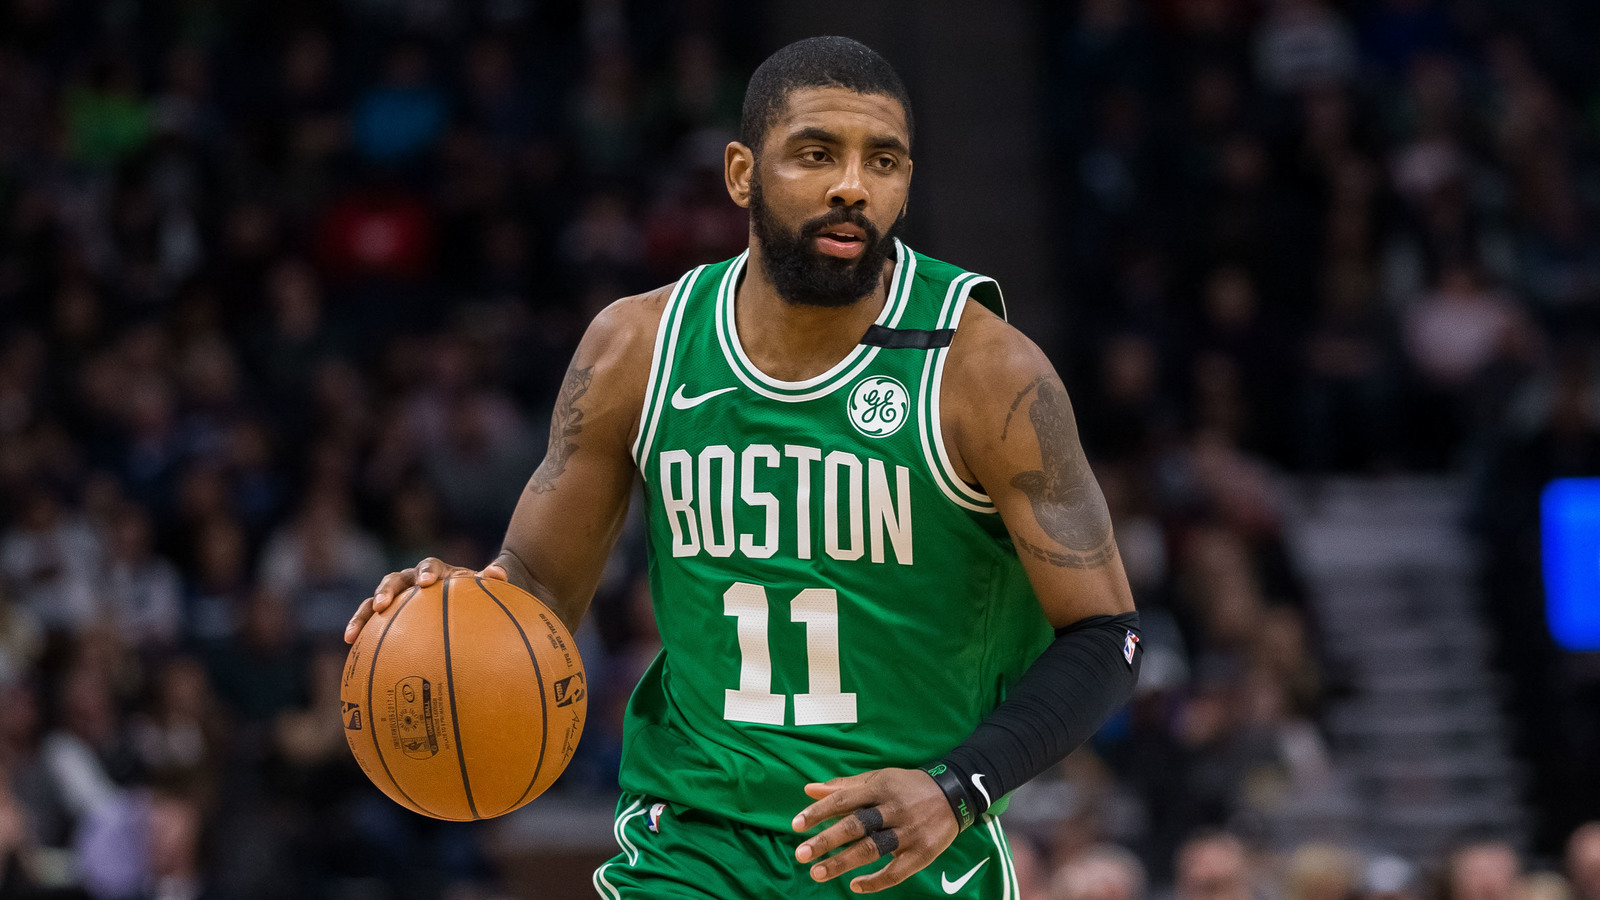 Boston should be worried about Kyrie Irving | YardbarkerKyrie Irving